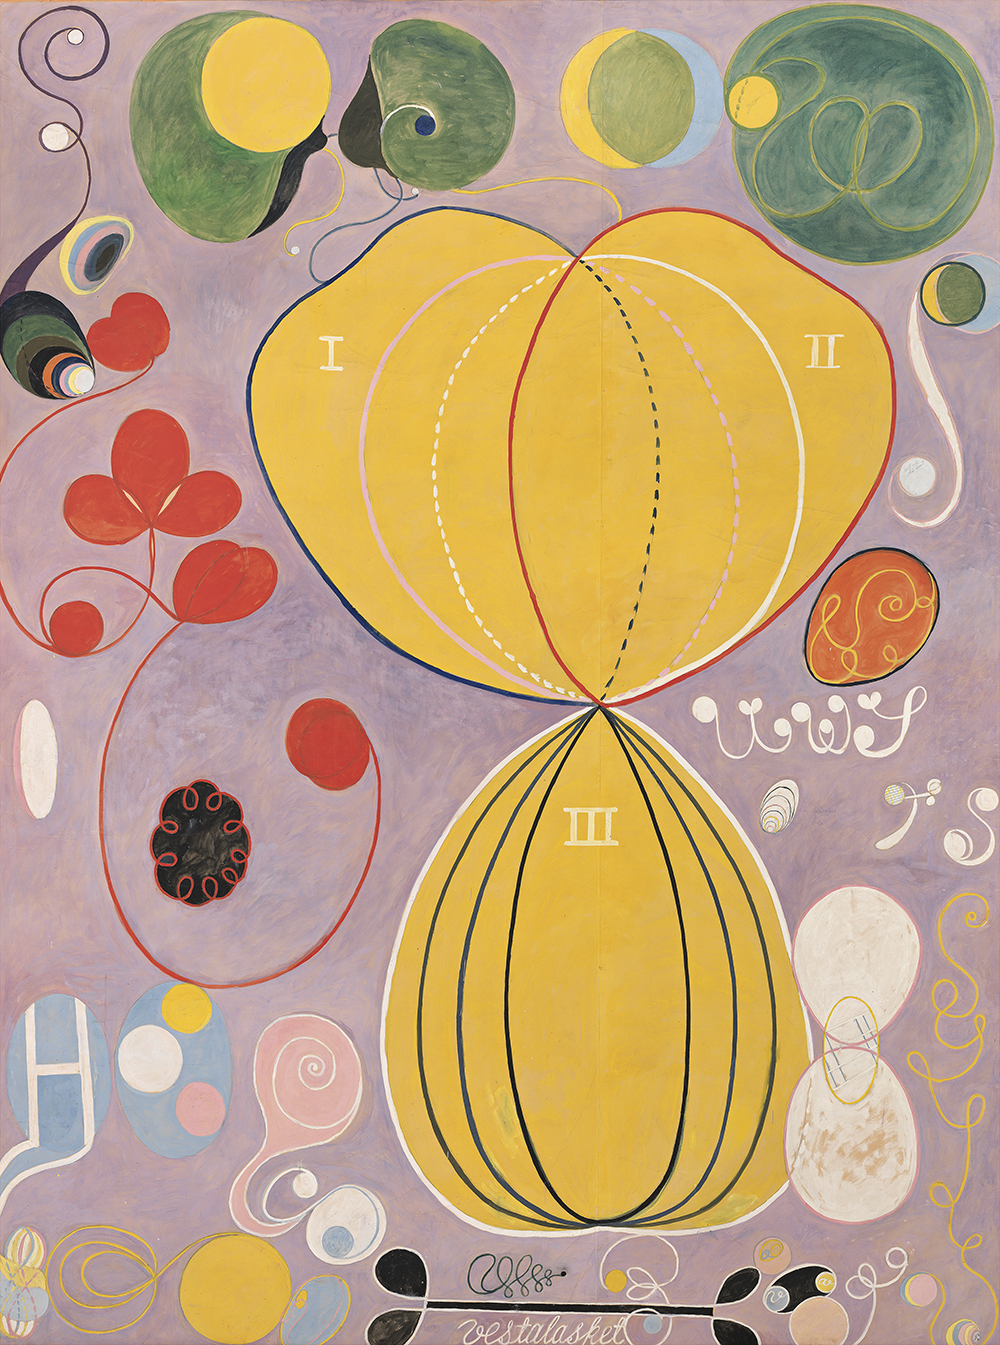 Hilma af Klint. The Ten Largest, No. 7., Adulthood, Group IV, 1907. Tempera on paper mounted on canvas, 315 x 235 cm. Stiftelsen Hilma af Klints Verk. Photo: Albin Dahlström/Moderna Museet